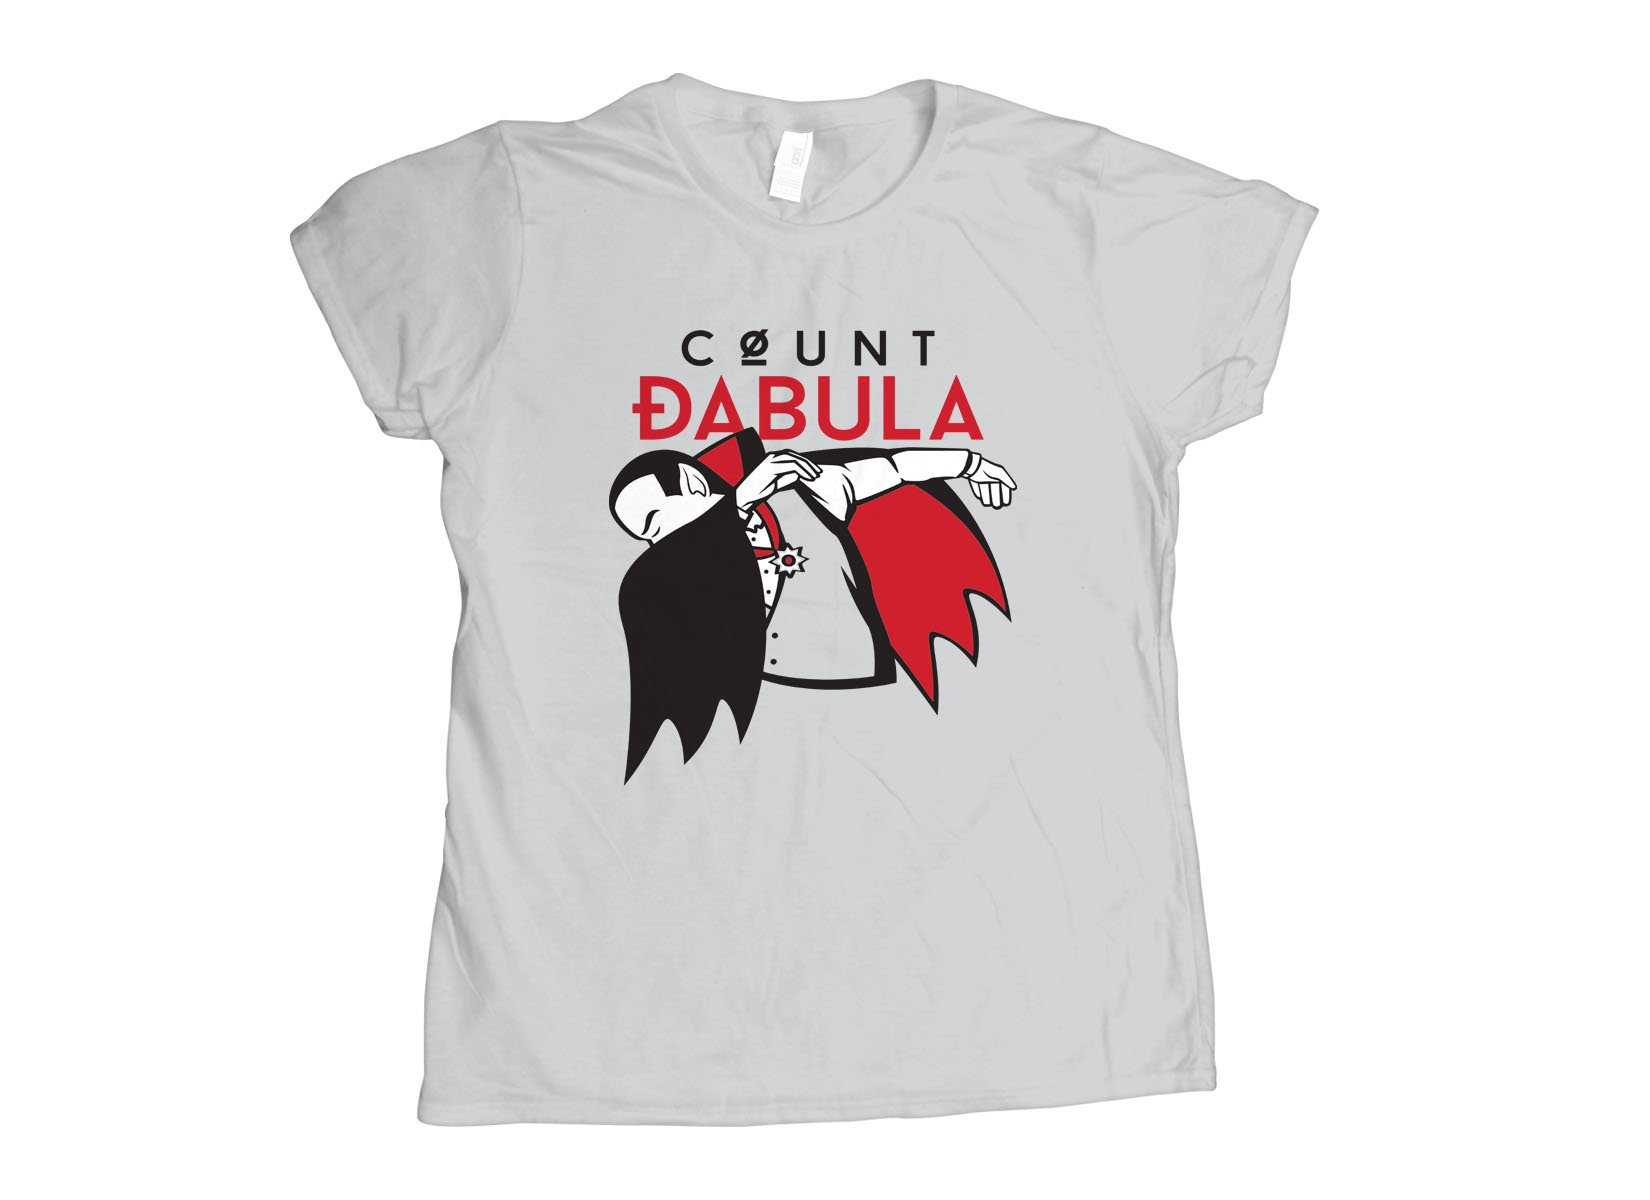 Count Dabula on Womens T-Shirt